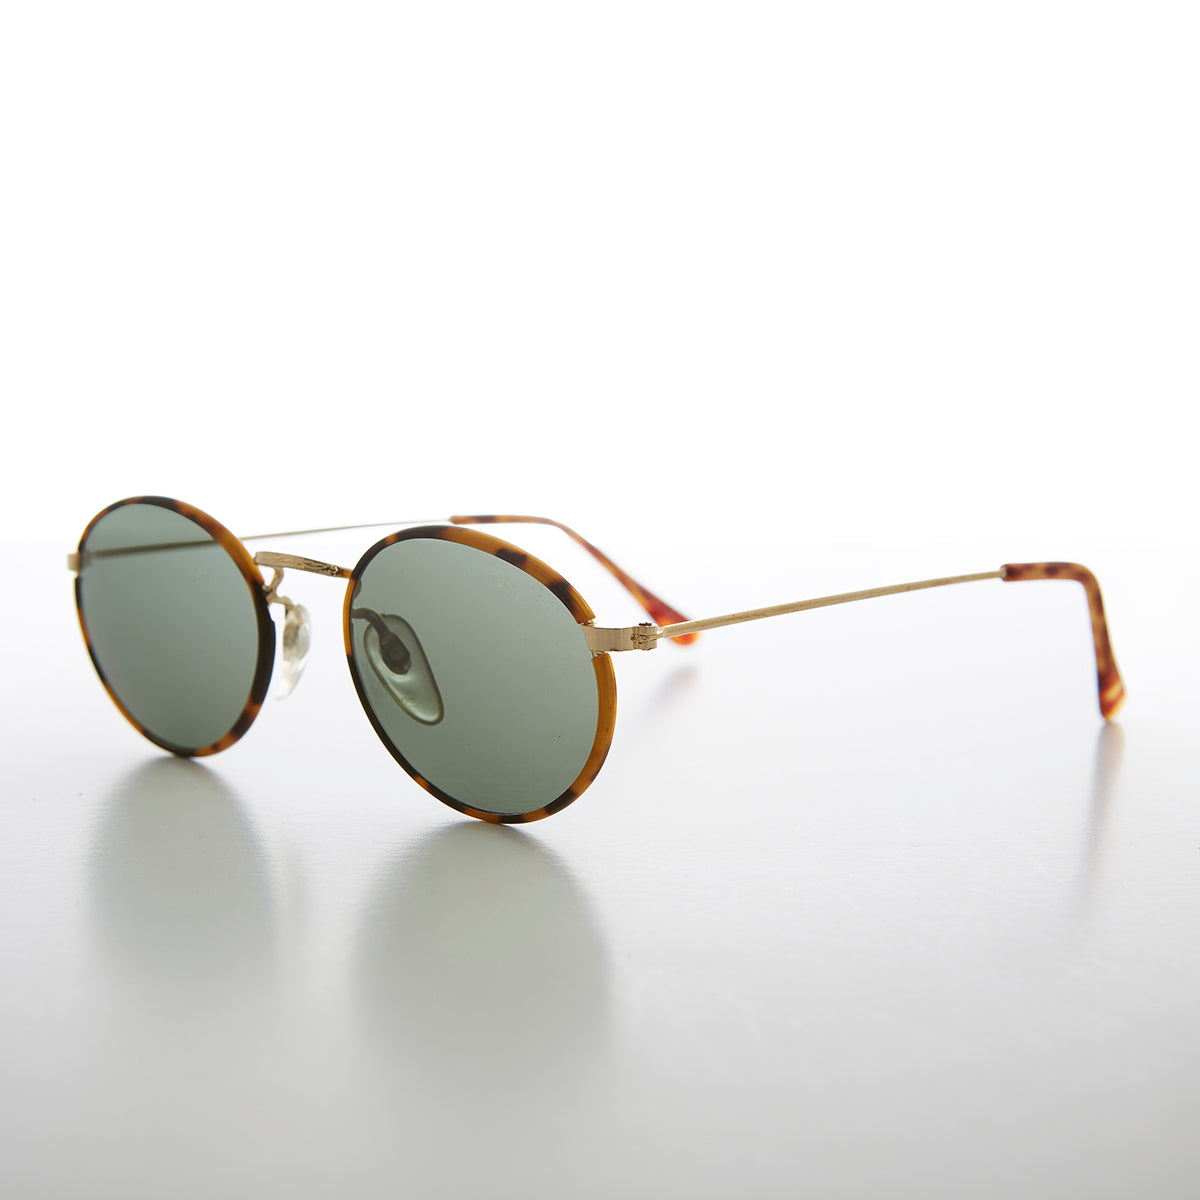 Simple Oval Vintage 90s Sunglass